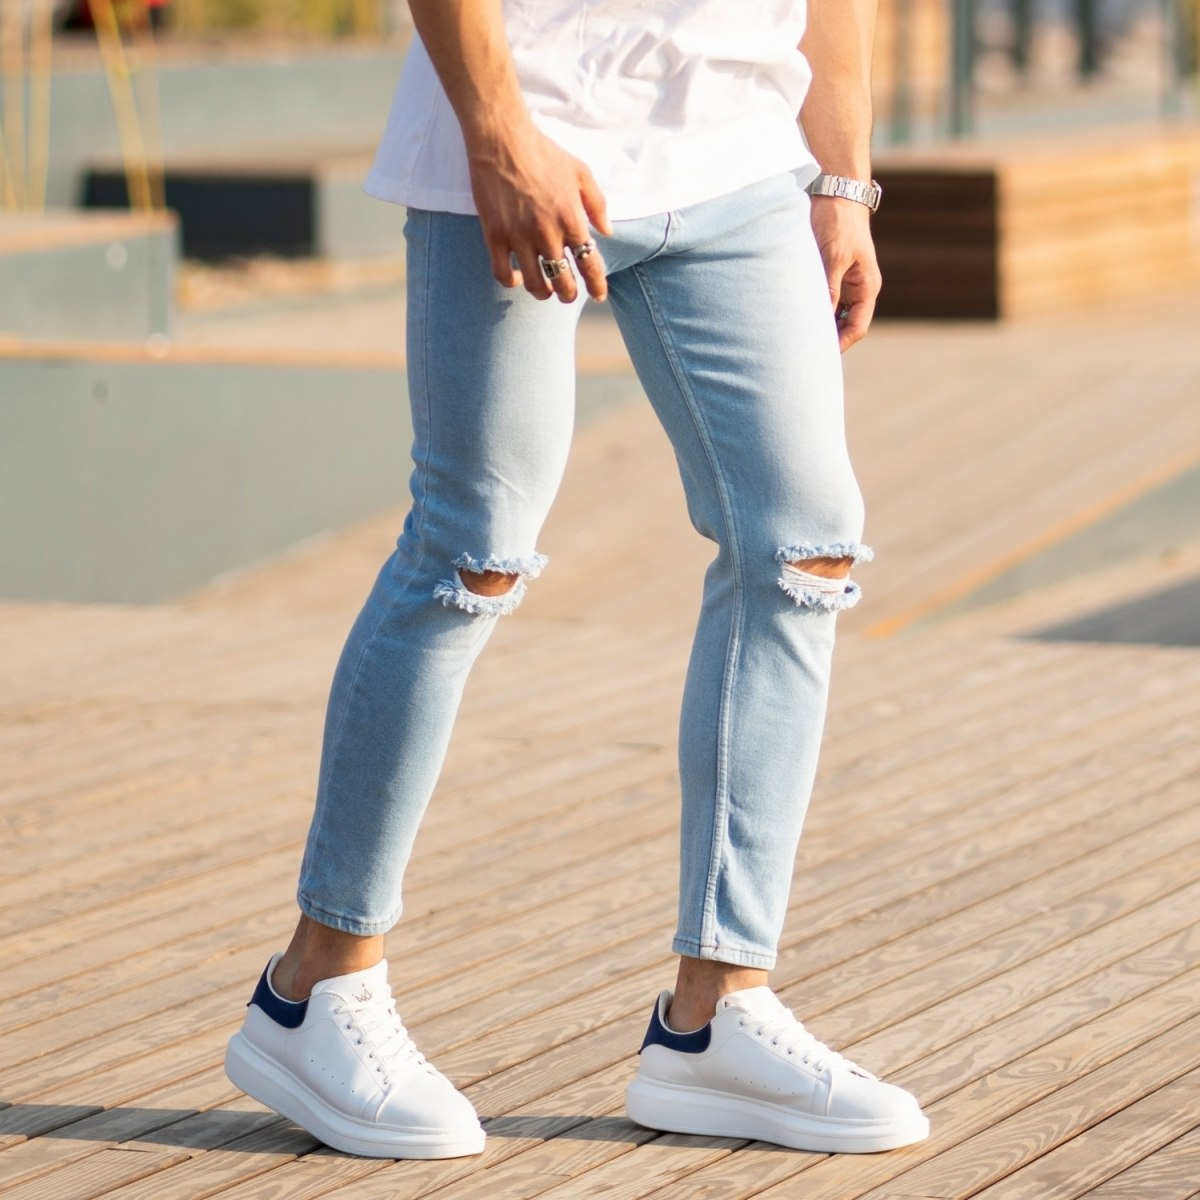 Men's Light-Blue Jeans With...